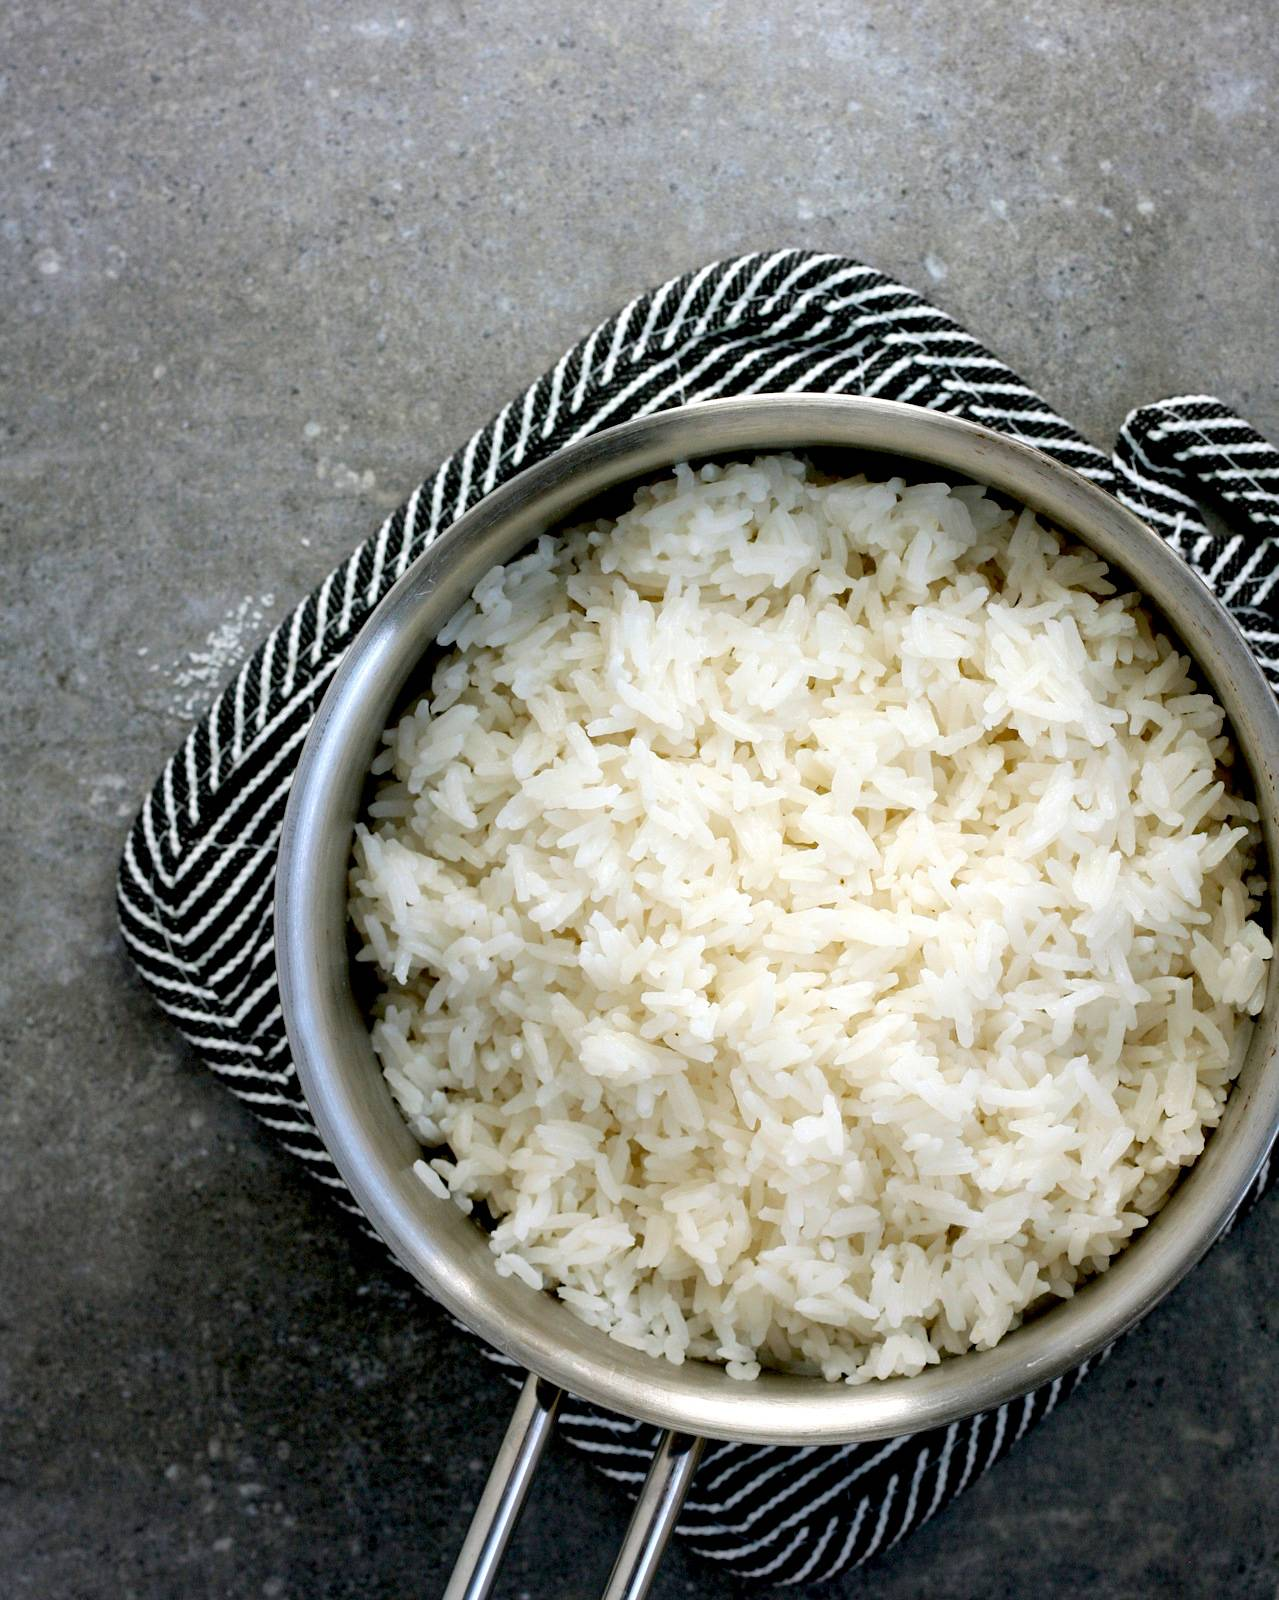 A small saucepan filled with fluffy coconut rice on a gray back drop